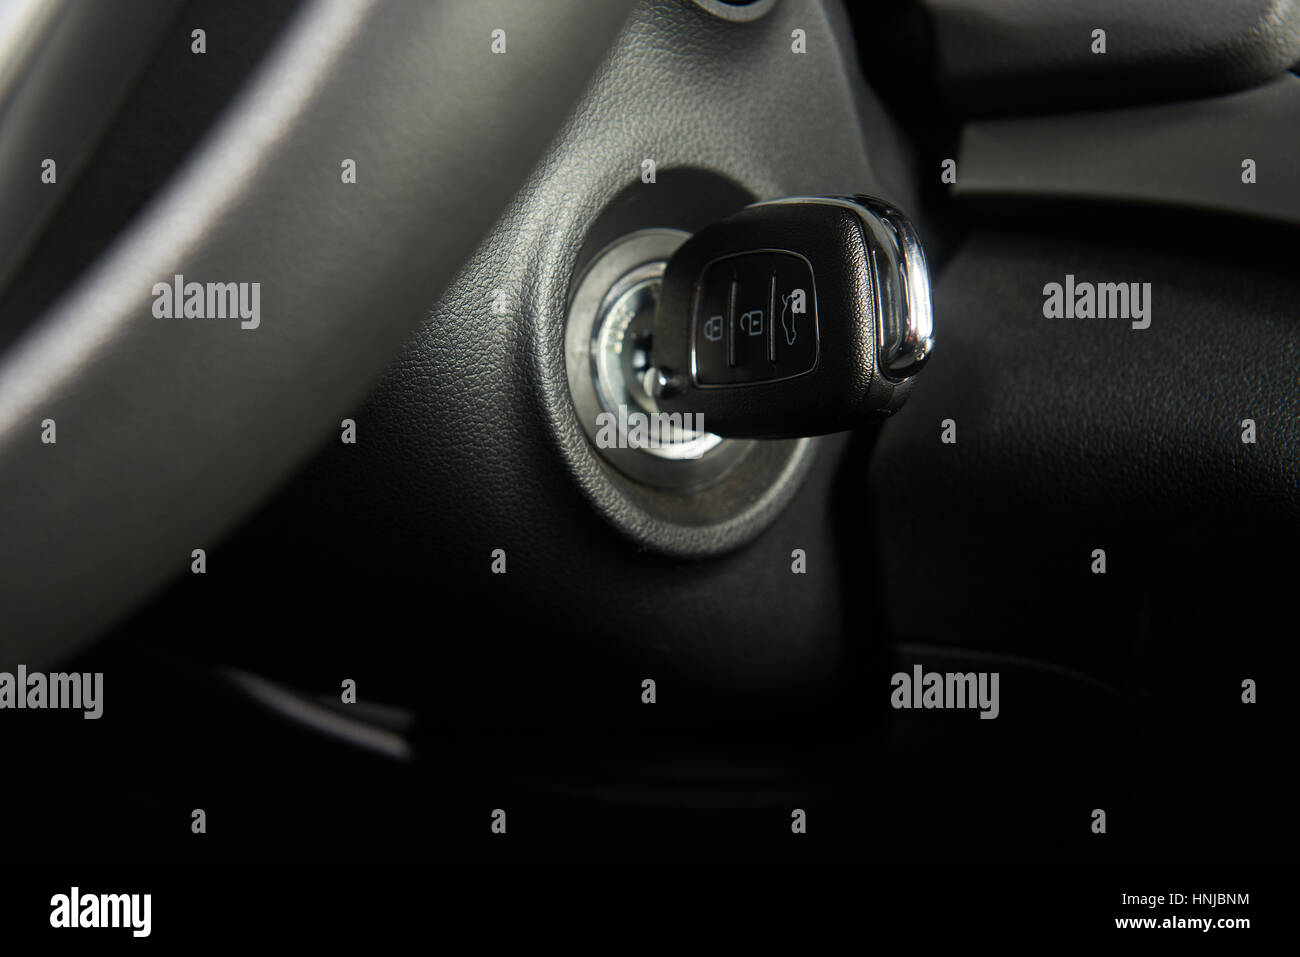 ignition key of modern car close up car key in keyhole stock photo royalty free image. Black Bedroom Furniture Sets. Home Design Ideas